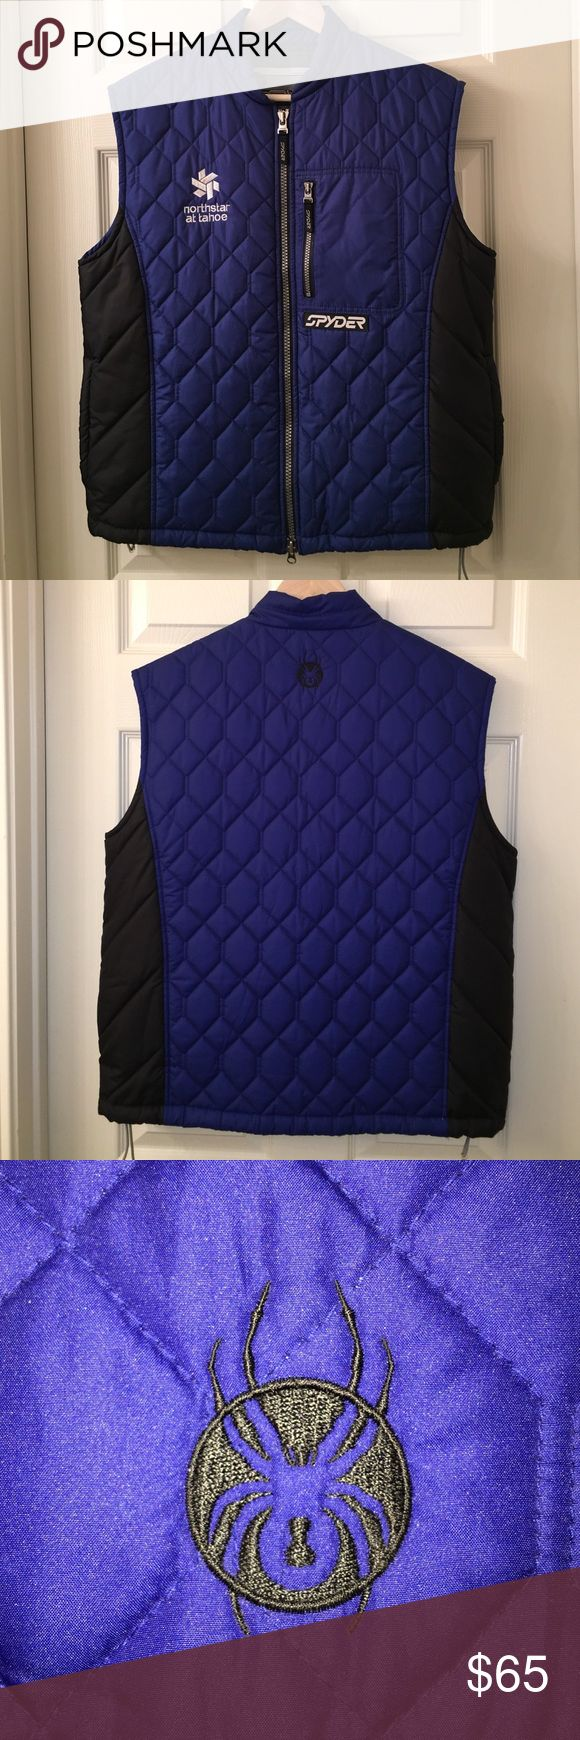 SPYDER Zipper Quilted Tahoe Ski Resort Vest sz M High quality SPYDER vest with lots of zippers💕❤️💕purchased at a ski resort💕❤️💕sz M 💕❤️💕very good used condition💕❤️💕happy poshing💕❤️💕 Spyder Jackets & Coats Vests